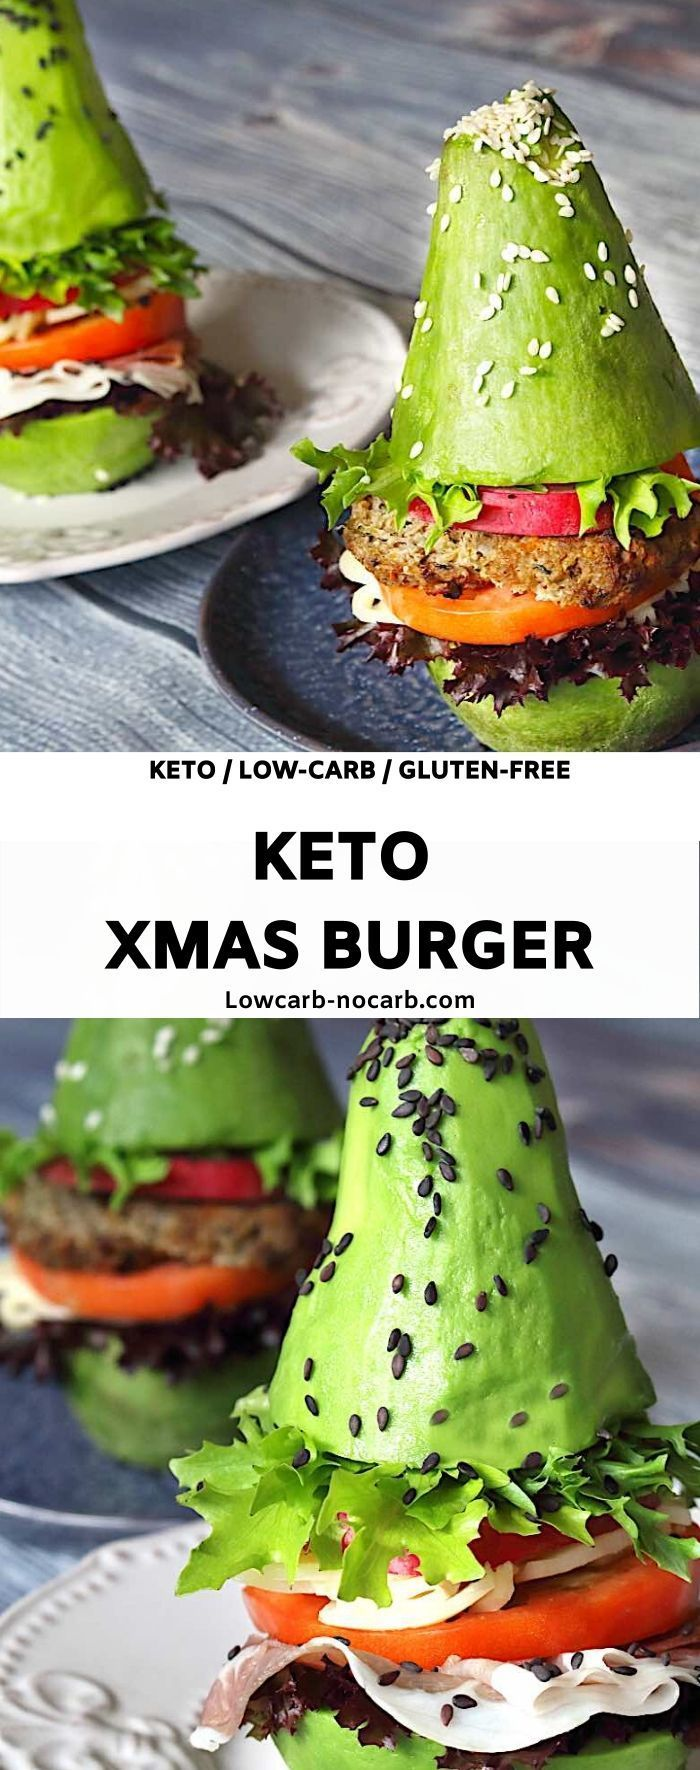 Keto Xmas Tree Burger Decorate Avocados and build a beautiful Keto Xmas Tree Burger for your Breakf